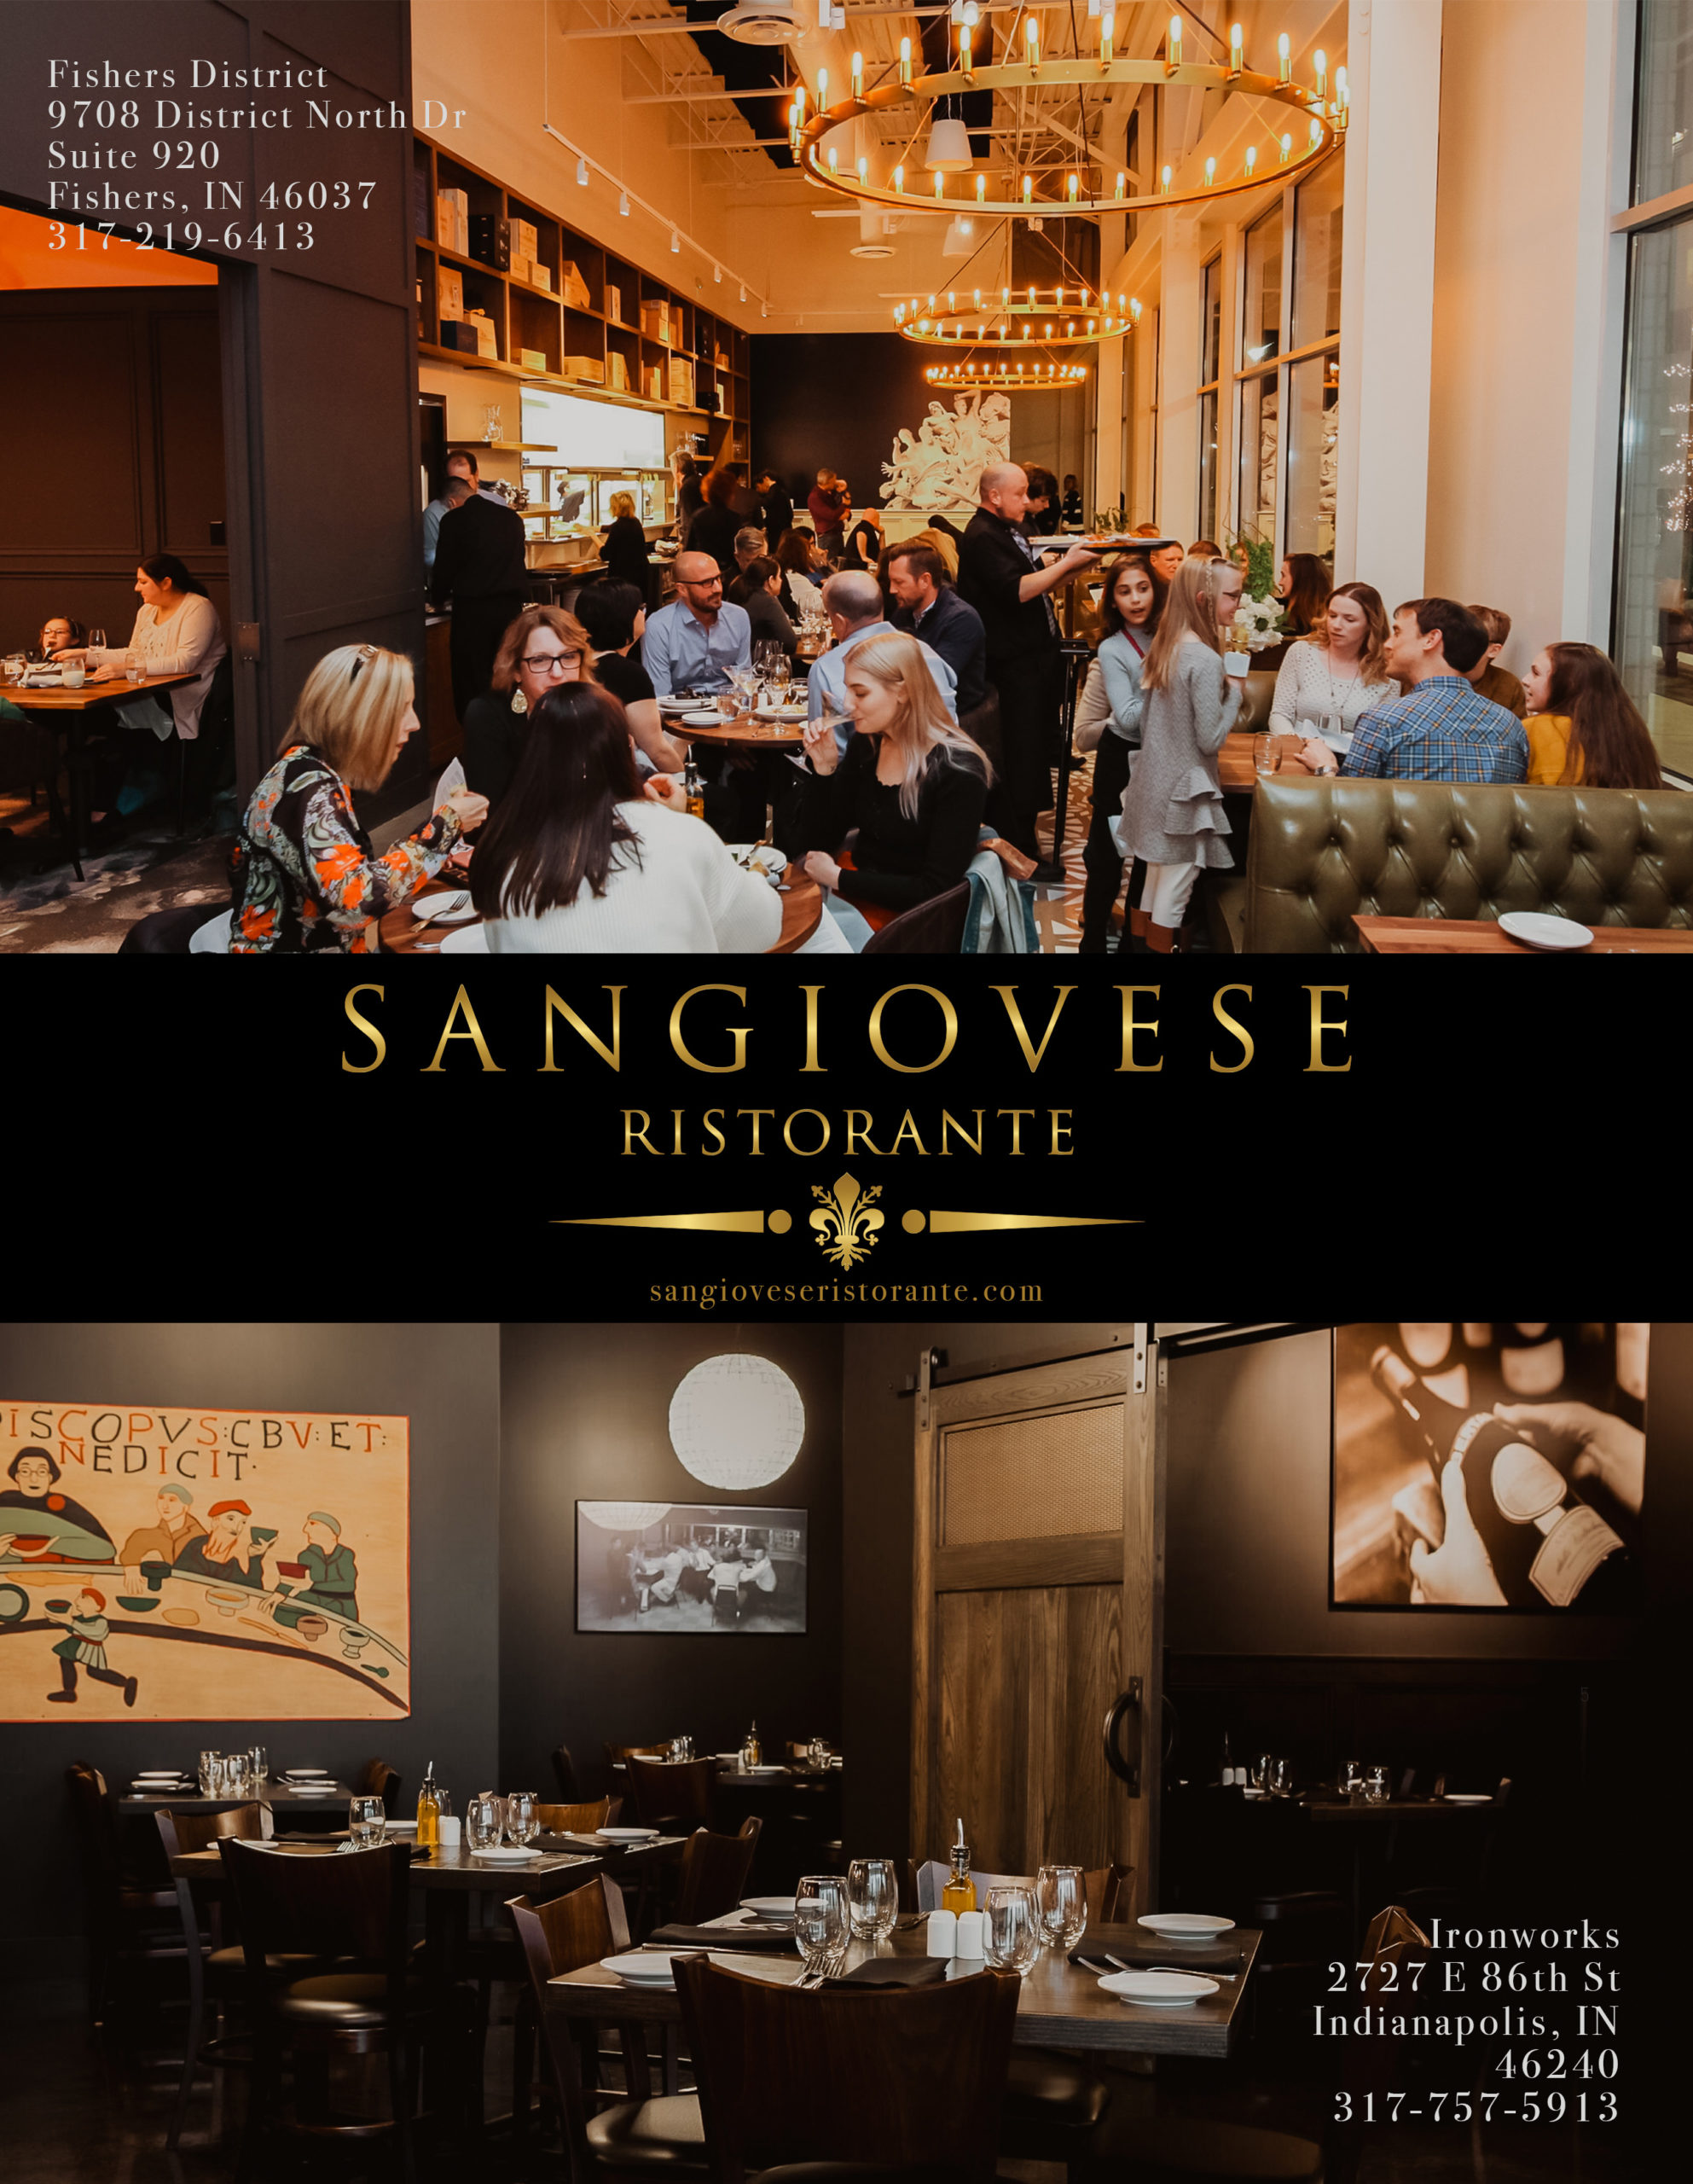 Sangiovese Ristorante – In The Yard at Fishers District